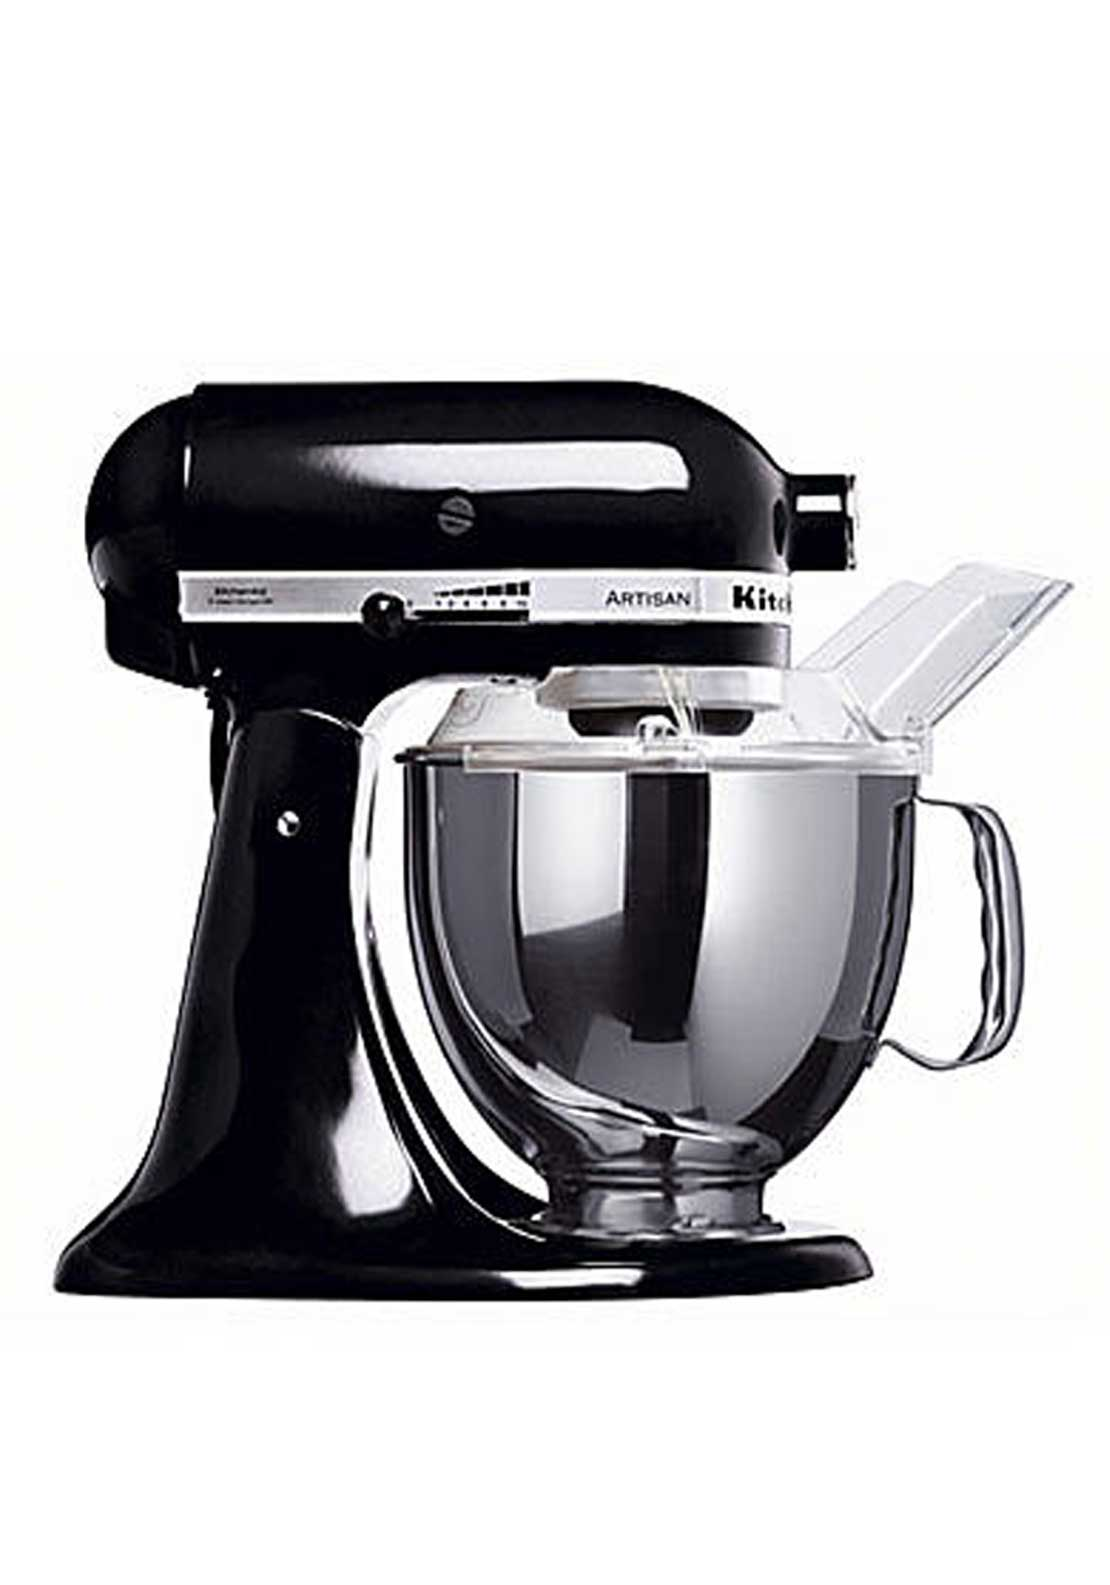 KitchenAid Artisan Stand Kitchen Mixer 4.8L, Onyx Black